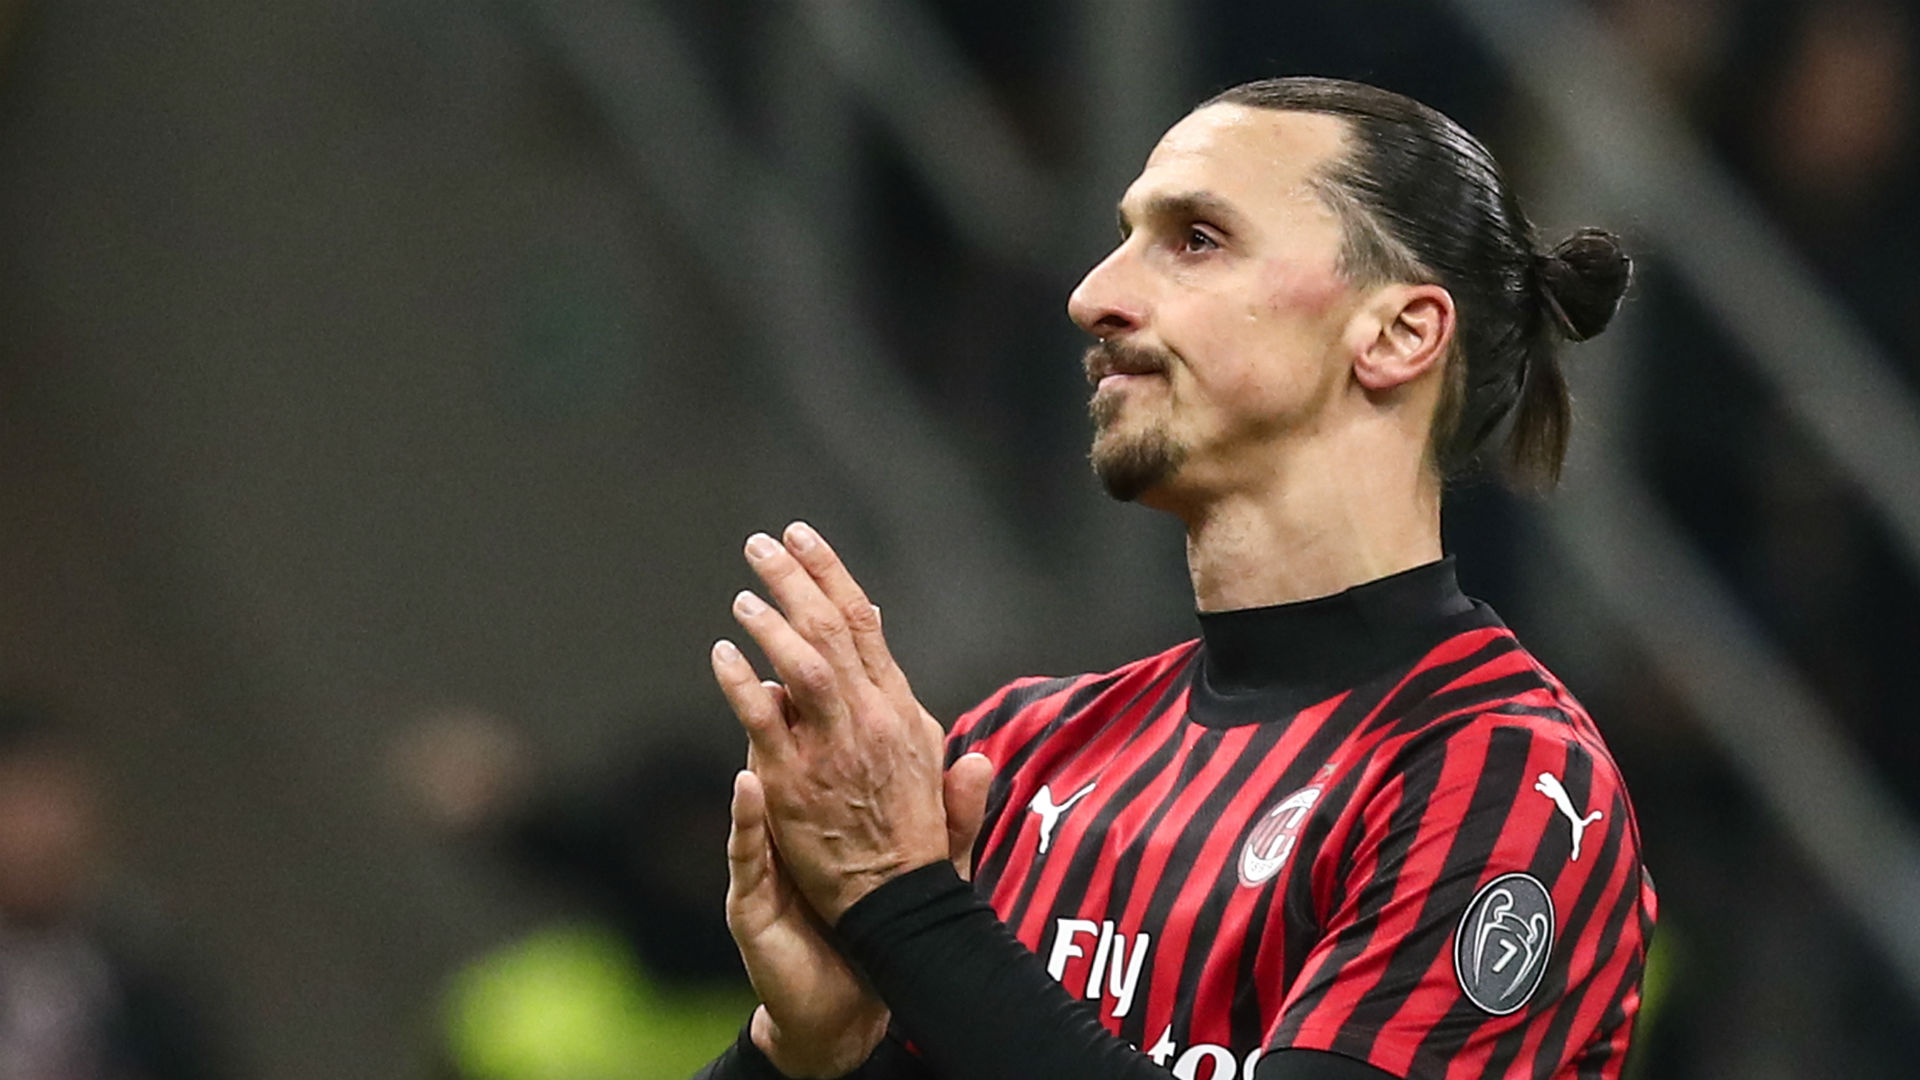 AC Milan confirm Ibrahimovic has not suffered career-ending Achilles injury